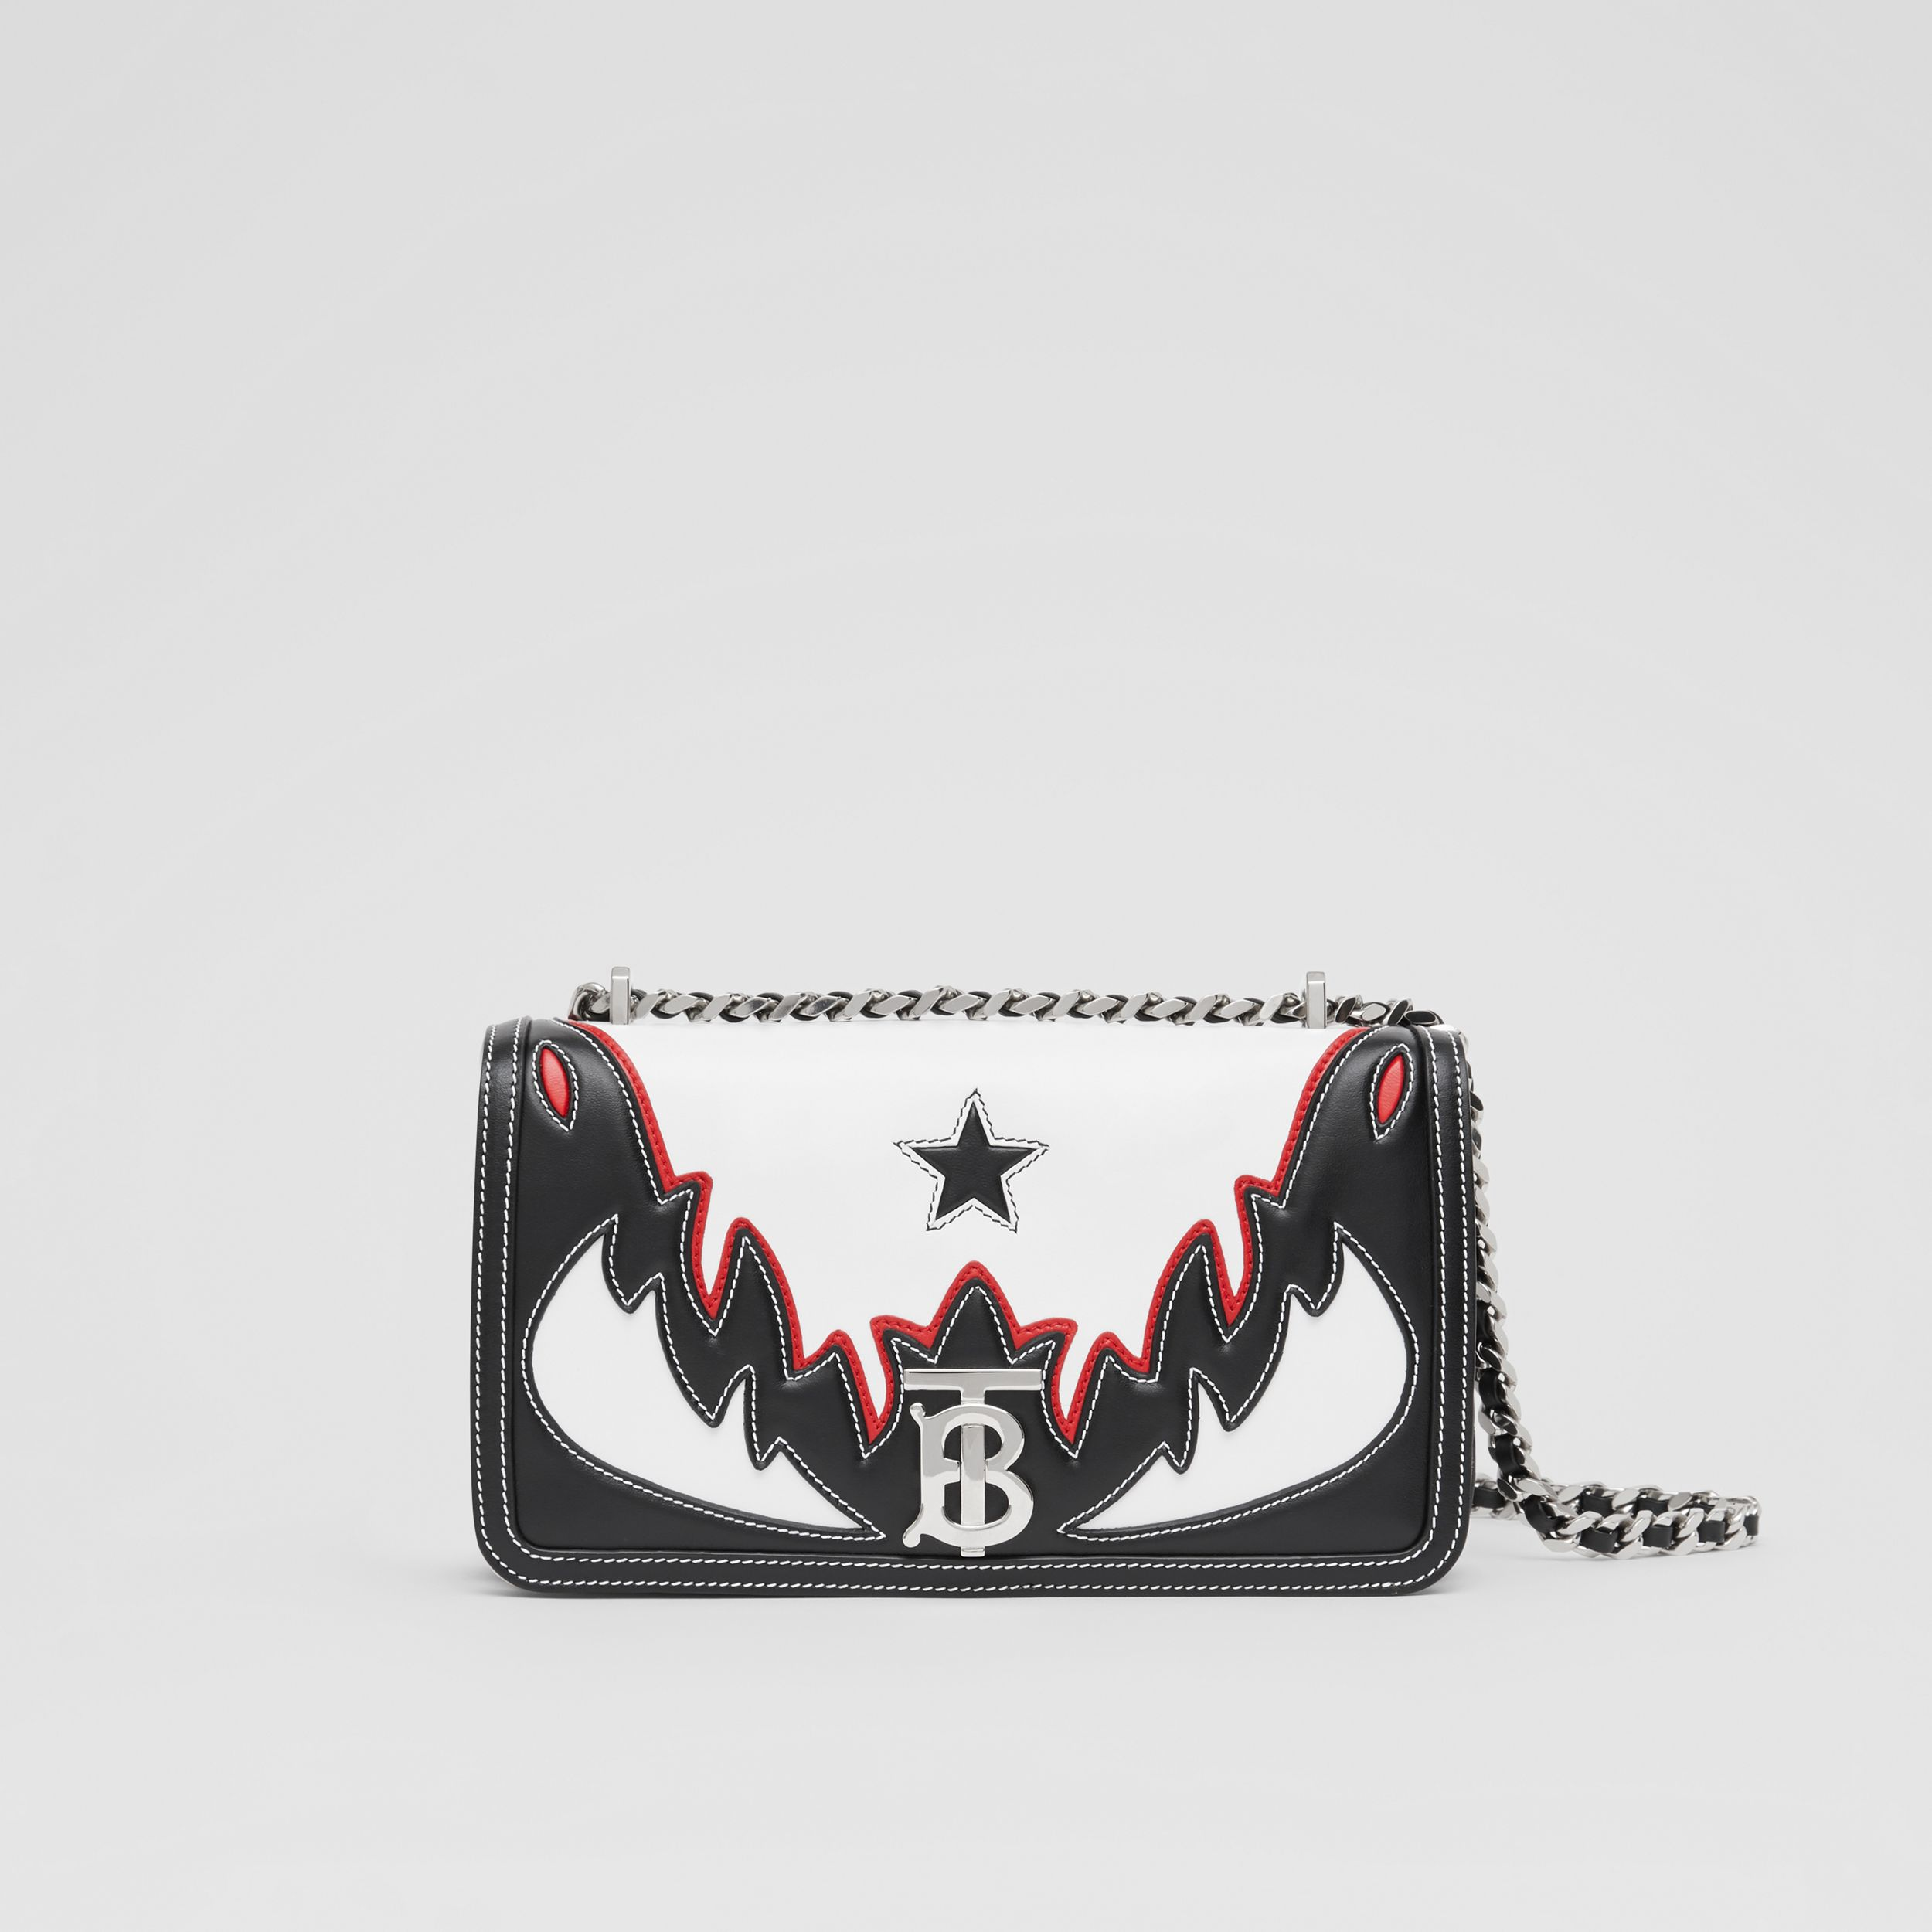 Small Topstitch Appliqué Leather Lola Bag in White/black/red - Women | Burberry - 1